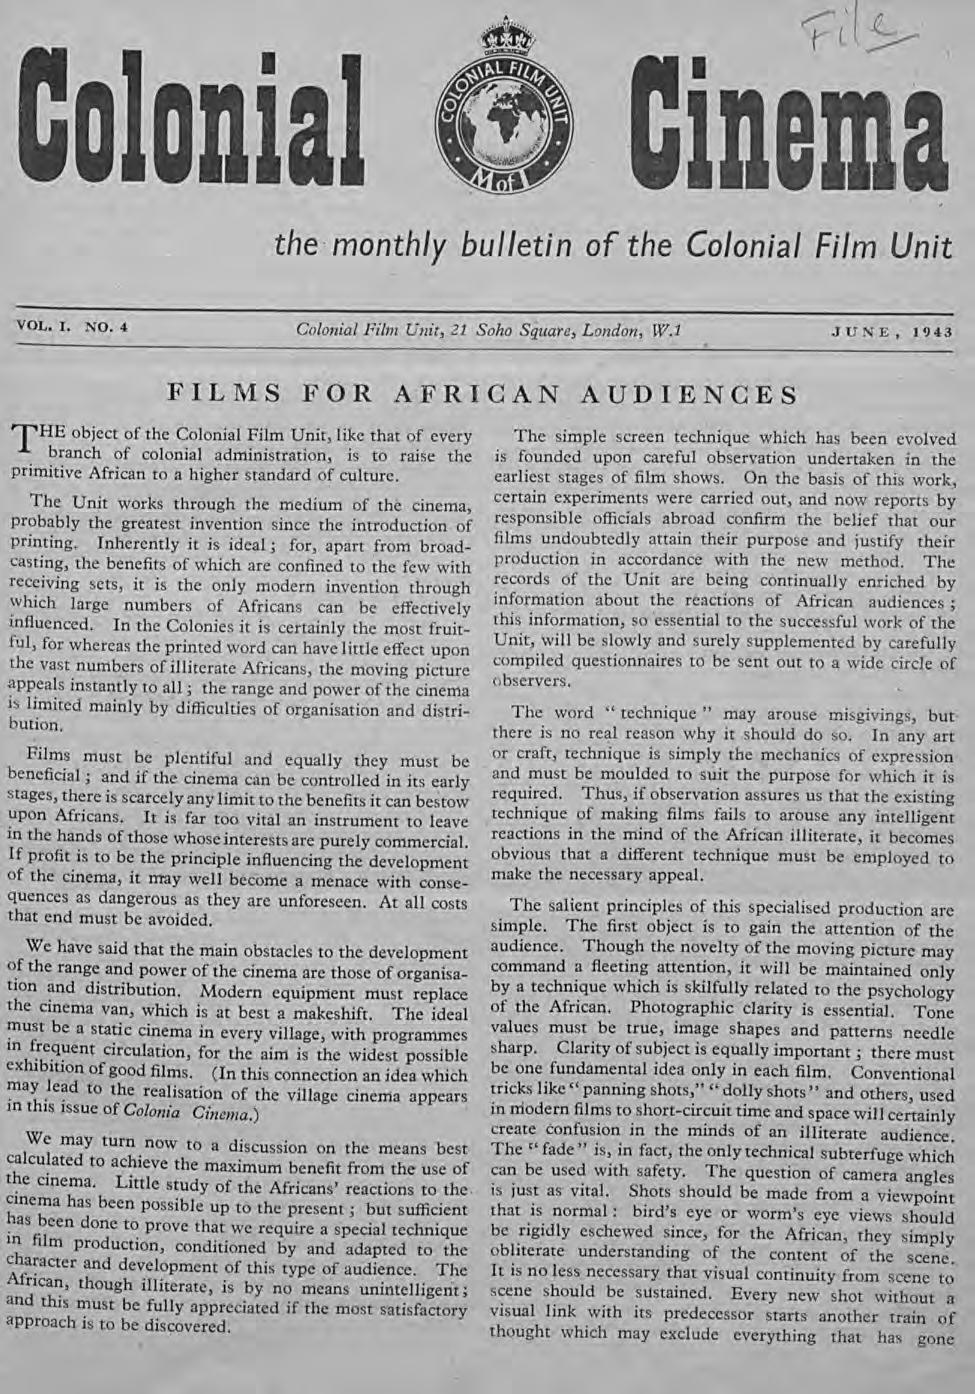 I D DDla I IDella the monthly bulletin of the Colonial Film Unit VOL. I. NO.4 Colonial Film Unit, 21 Soho Square, London, W.